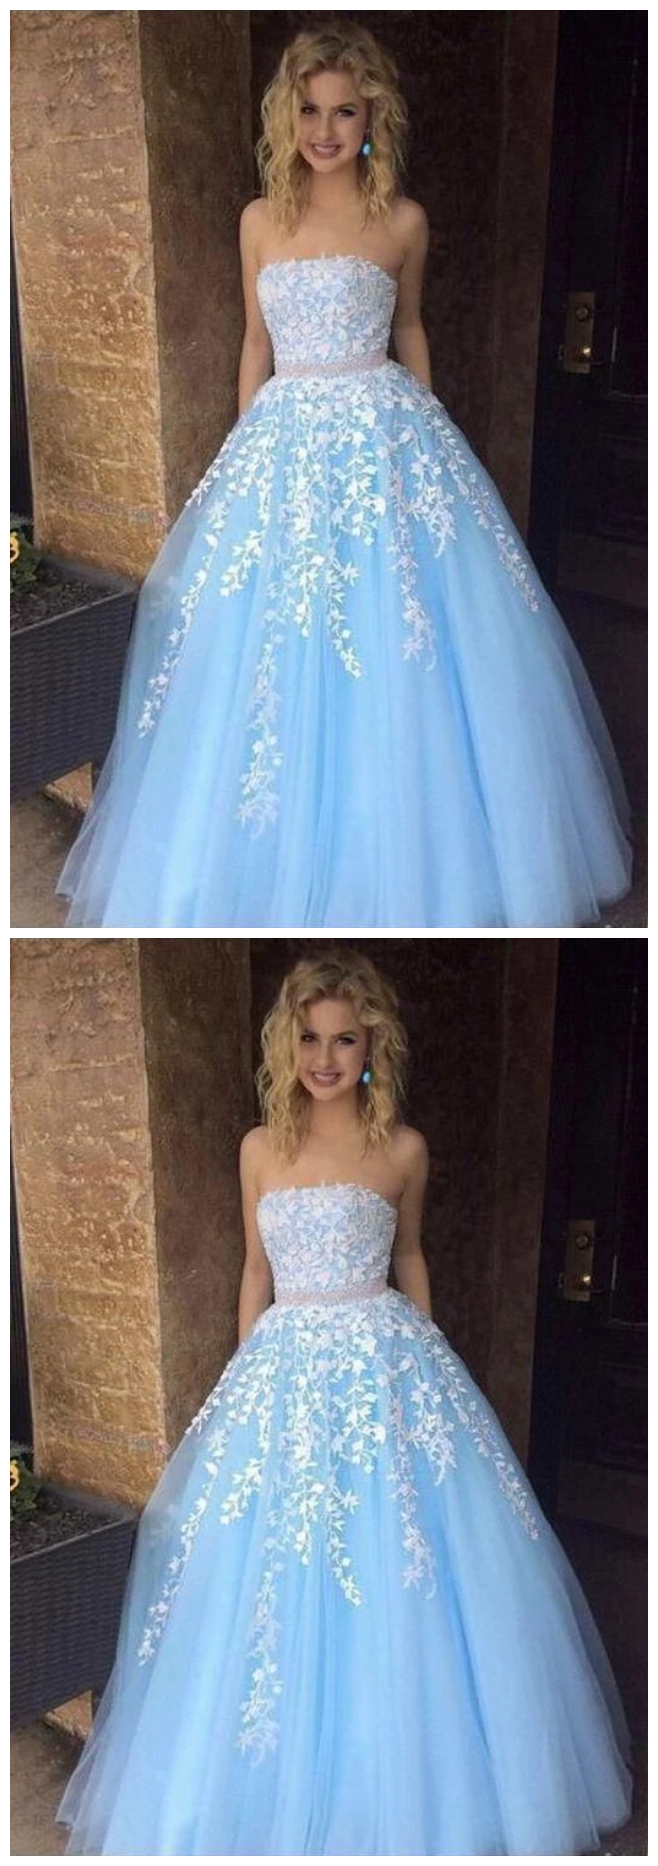 New Long Prom Dresses With Applique And Beading 8th Graduation Dress School Dance Winter Formal Dress In 2021 Prom Dresses Sleeveless Prom Dresses Long Prom Dresses Short [ 1866 x 658 Pixel ]